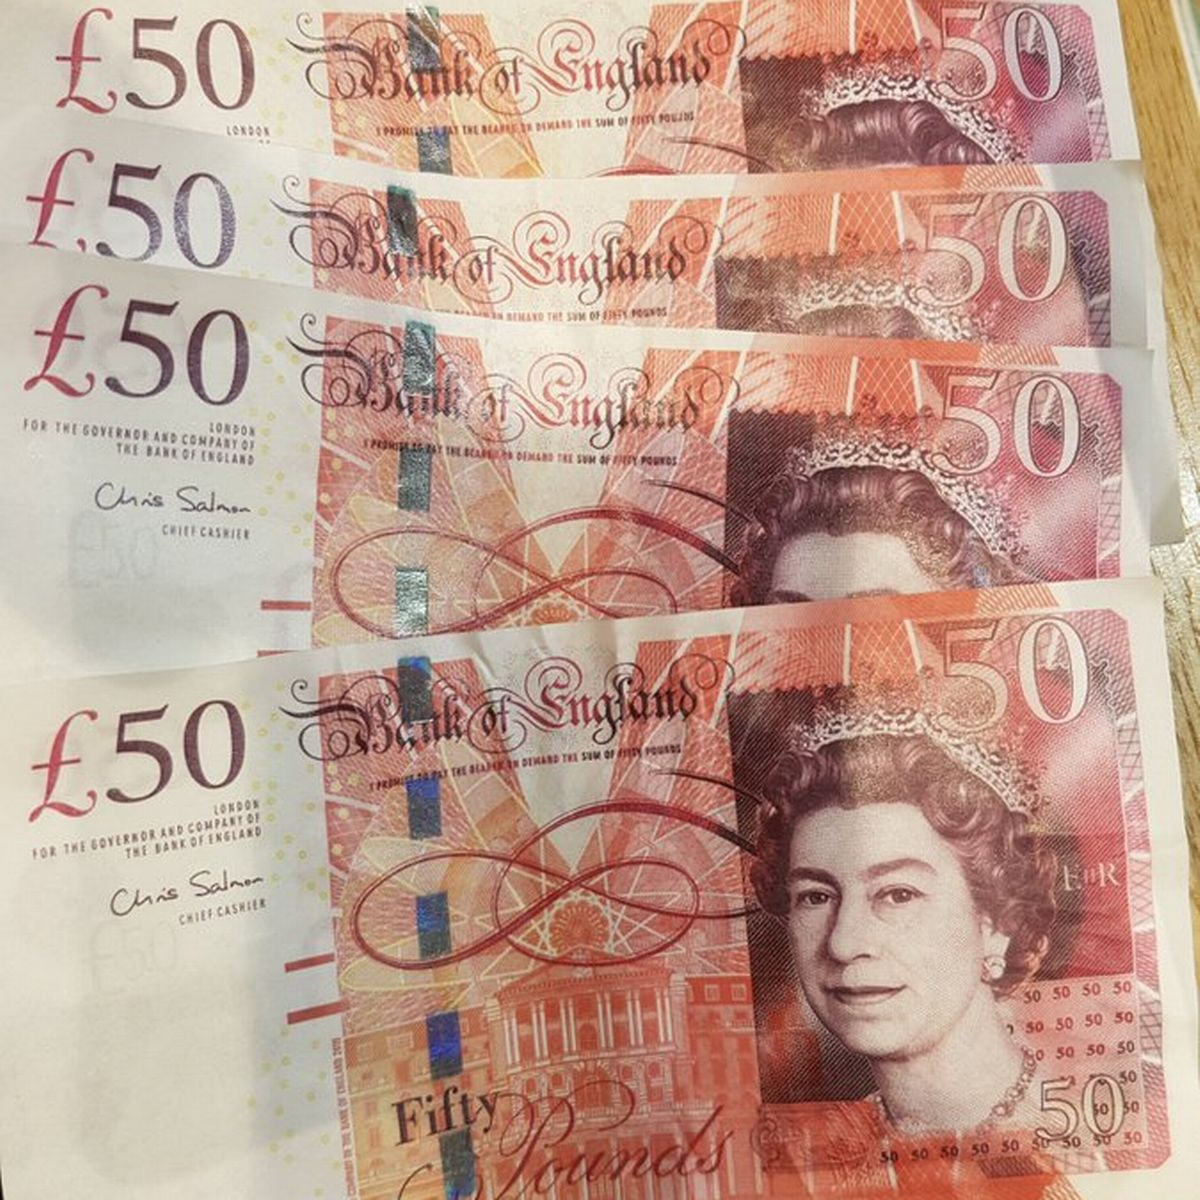 50*50 Fake £50 Notes Found By Police In The West Country - Here's How To Spot Bogus Cash - Somerset Live